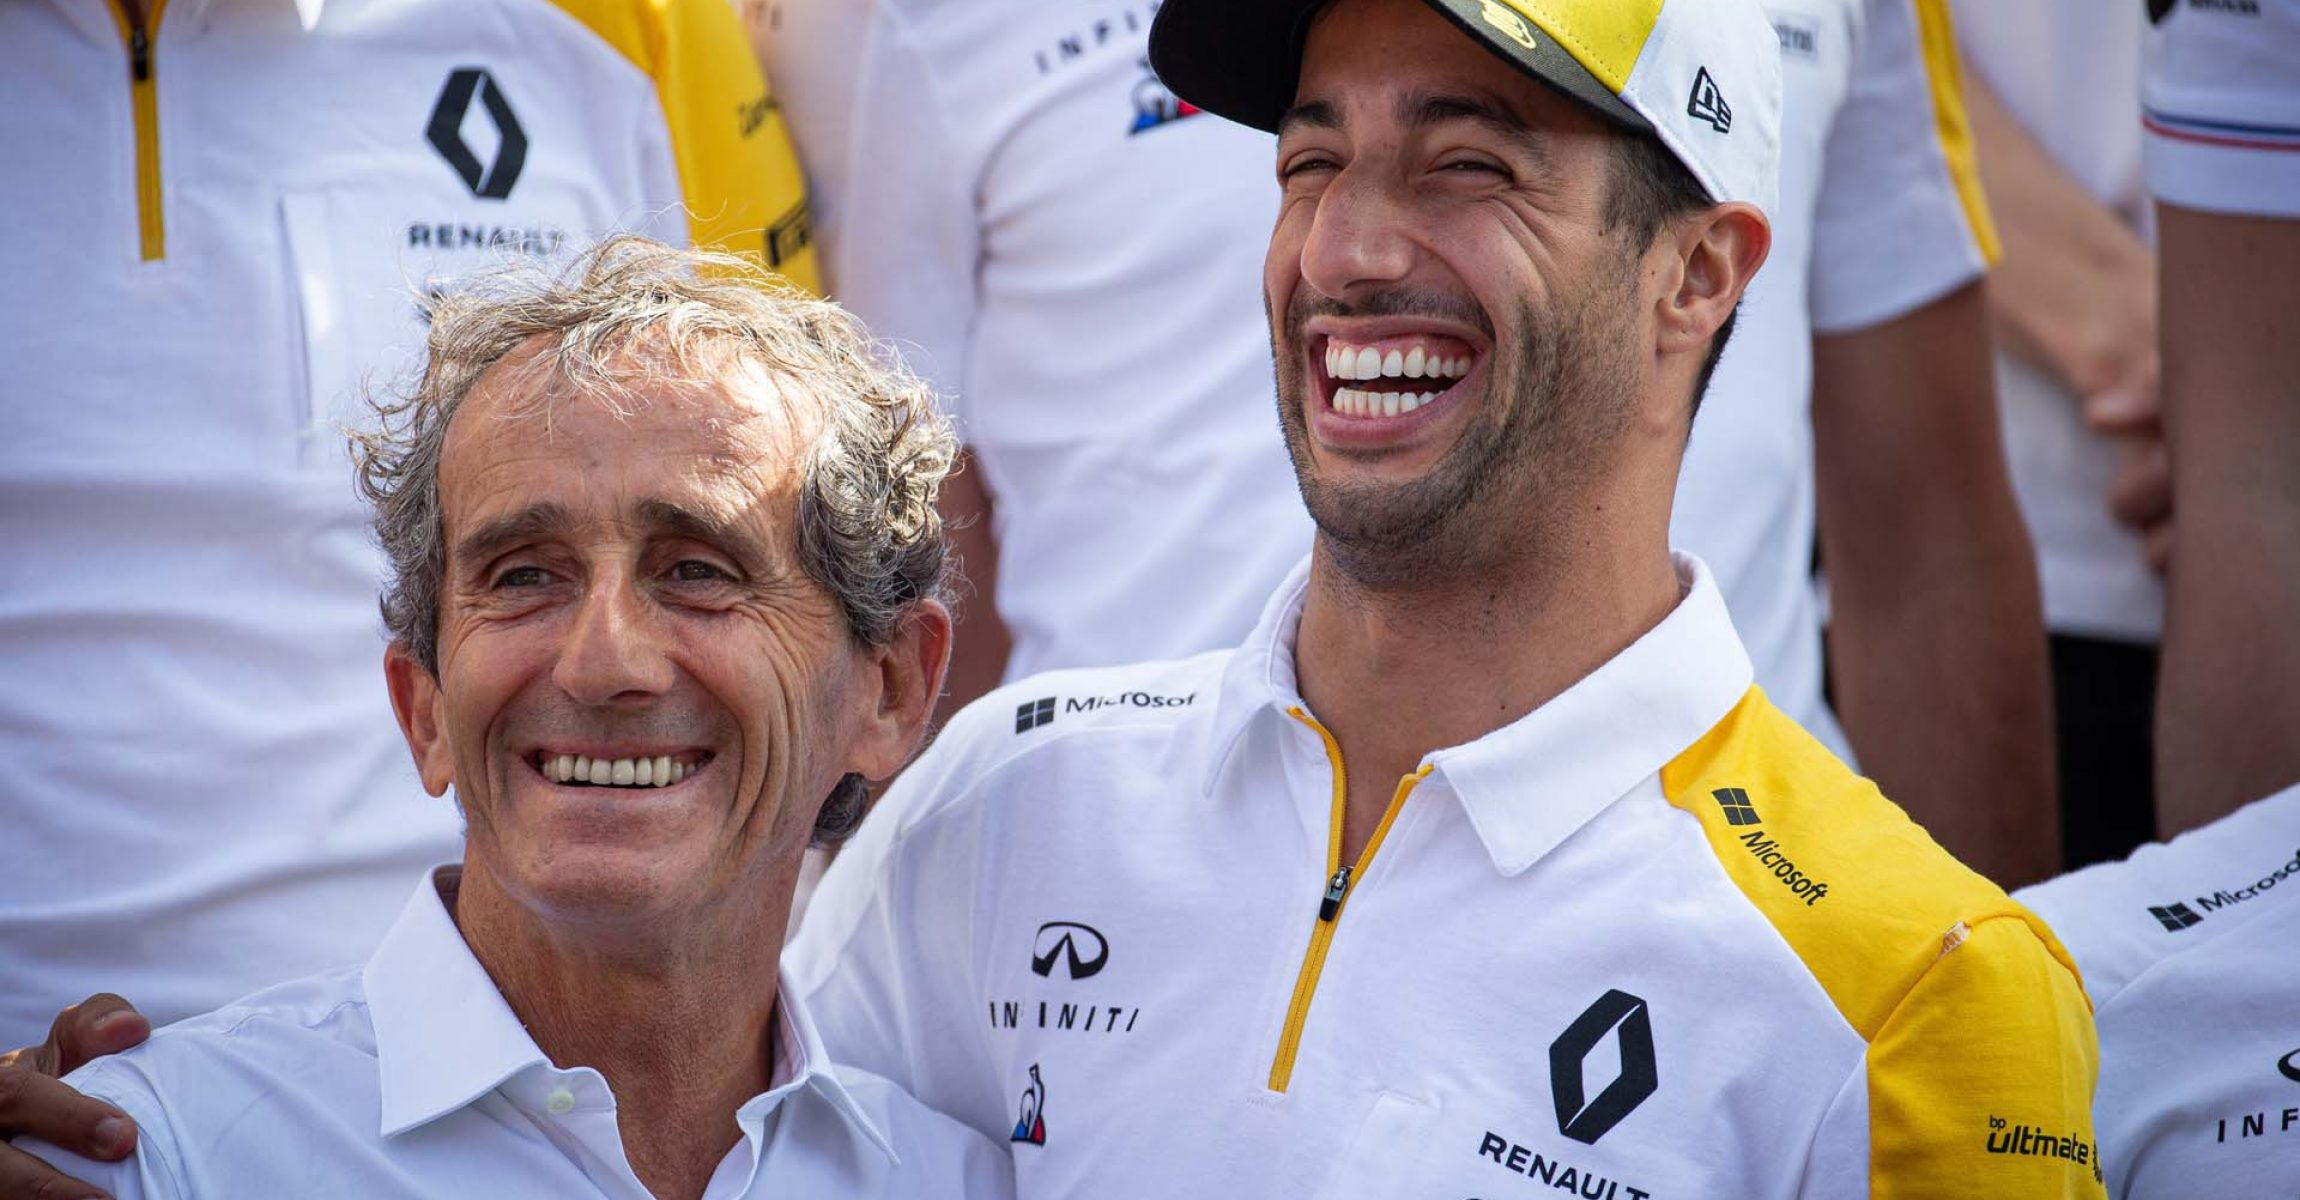 (L to R): Alain Prost (FRA) Renault F1 Team Special Advisor and Daniel Ricciardo (AUS) Renault F1 Team at a team photograph. French Grand Prix, Sunday 23rd June 2019. Paul Ricard, France.